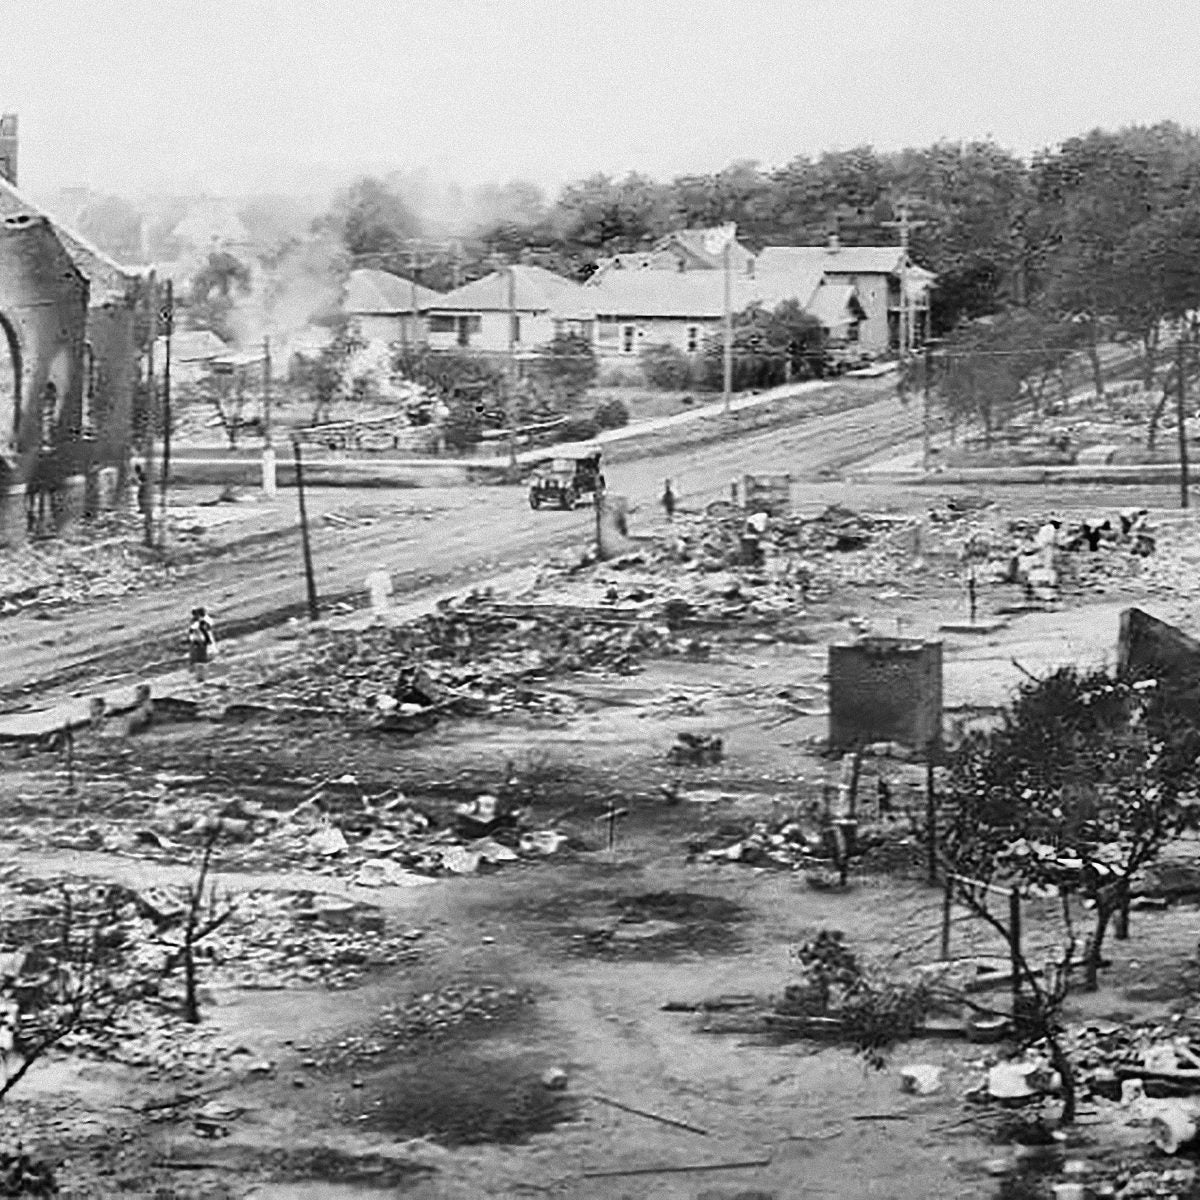 Think You Know About the Tulsa Race Massacre? Here Are 5 Facts That May Surprise You.